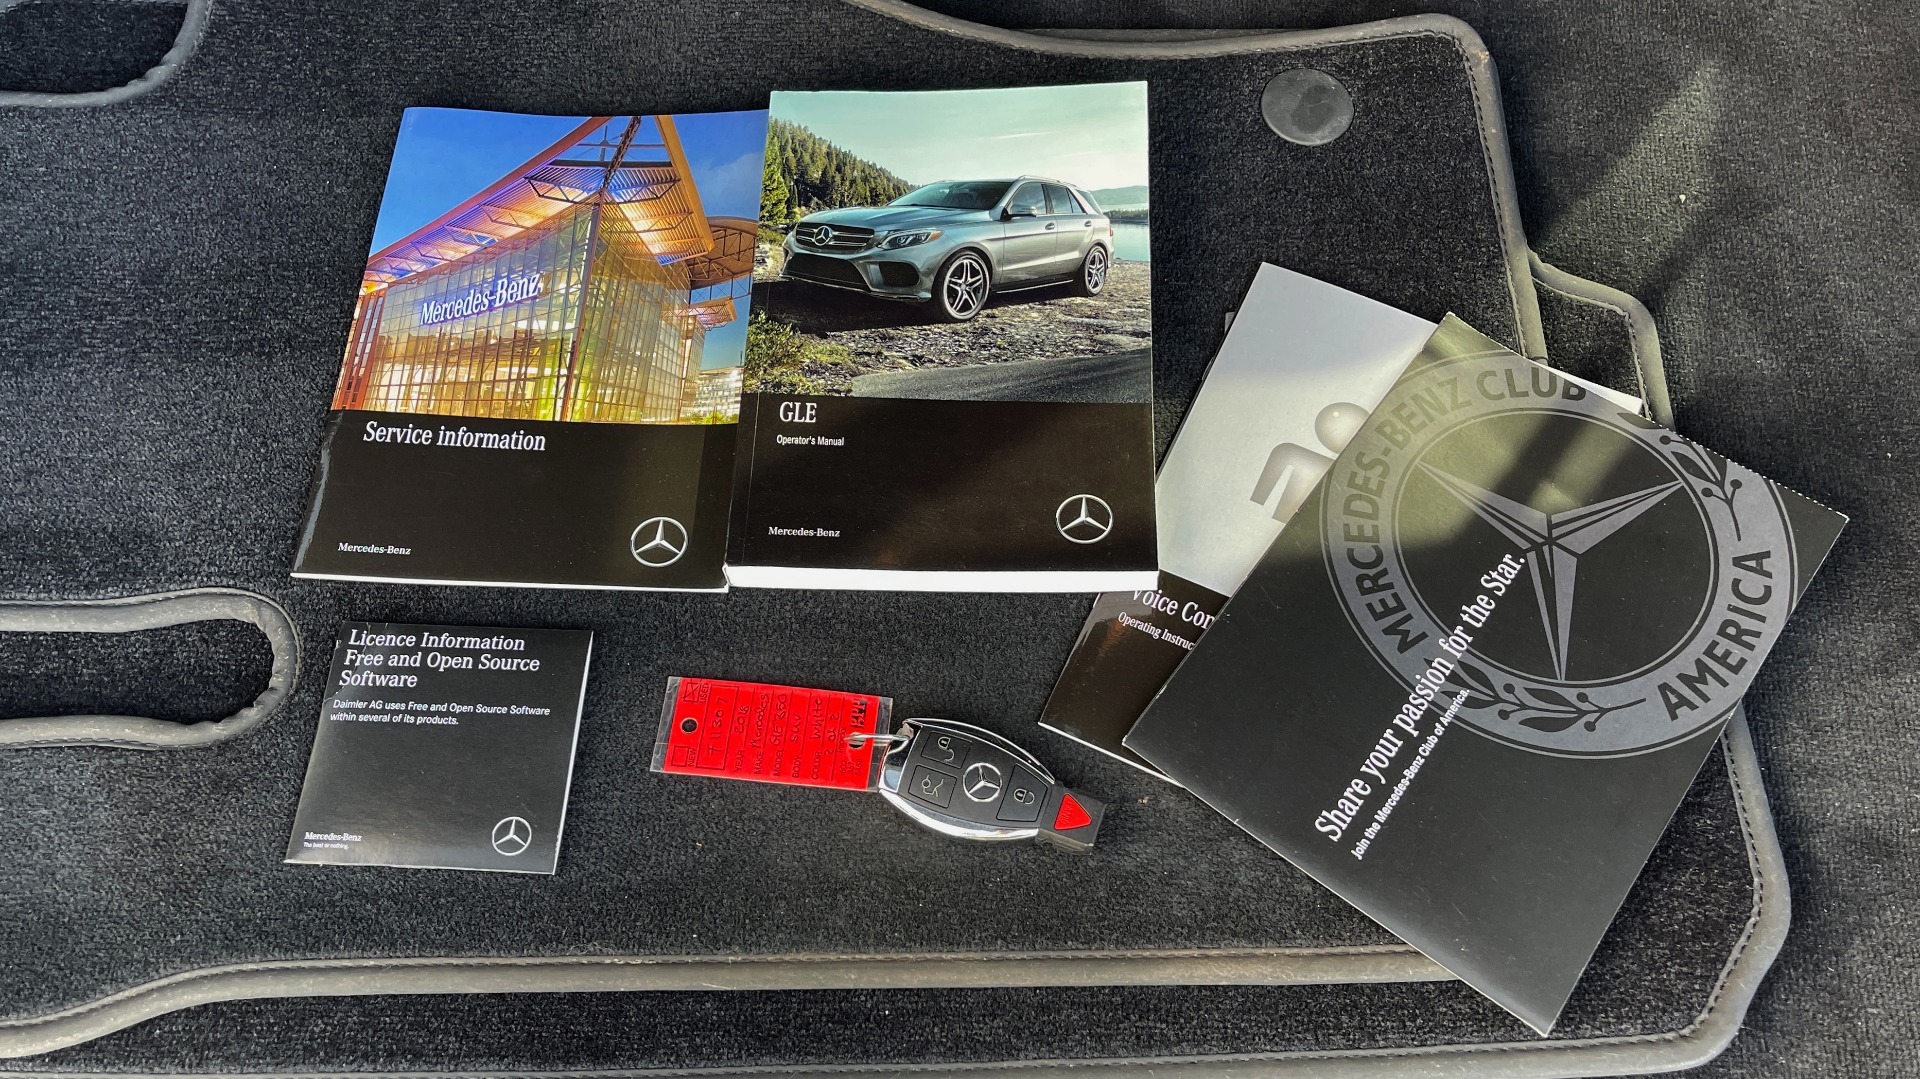 Used 2018 Mercedes-Benz GLE 350 4MATIC PREMIUM / NAV / SUNROOF / HTD STS / TRAILER HITCH / REARVIEW for sale $36,295 at Formula Imports in Charlotte NC 28227 77